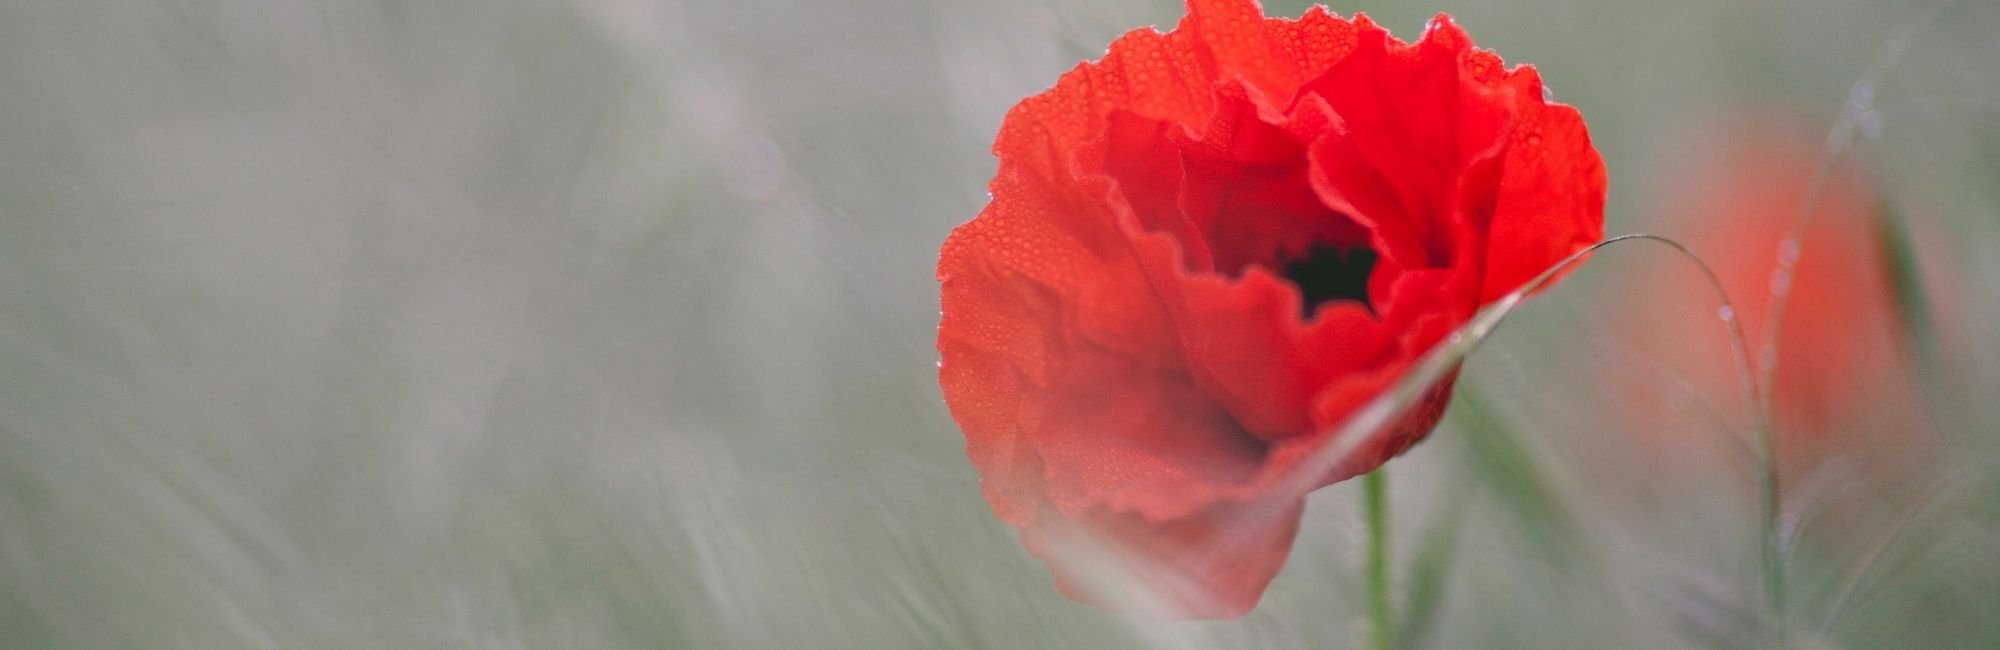 Remembrance Service*Sunday 8th November*More details